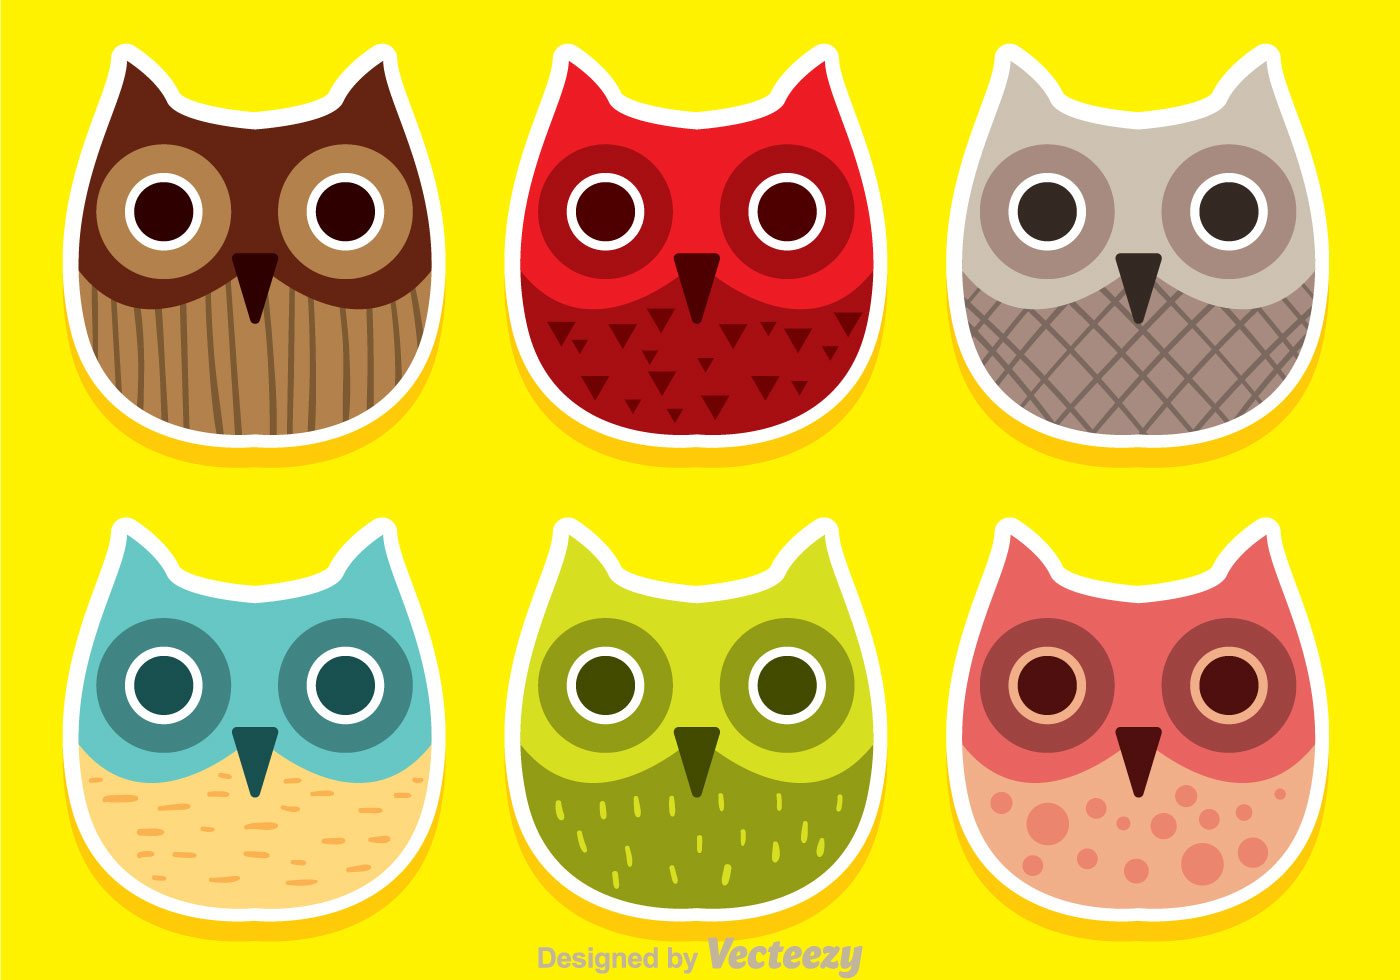 Colorful Pictures Of Owls Colorful Owl Face Vectors Download Free Vector Art